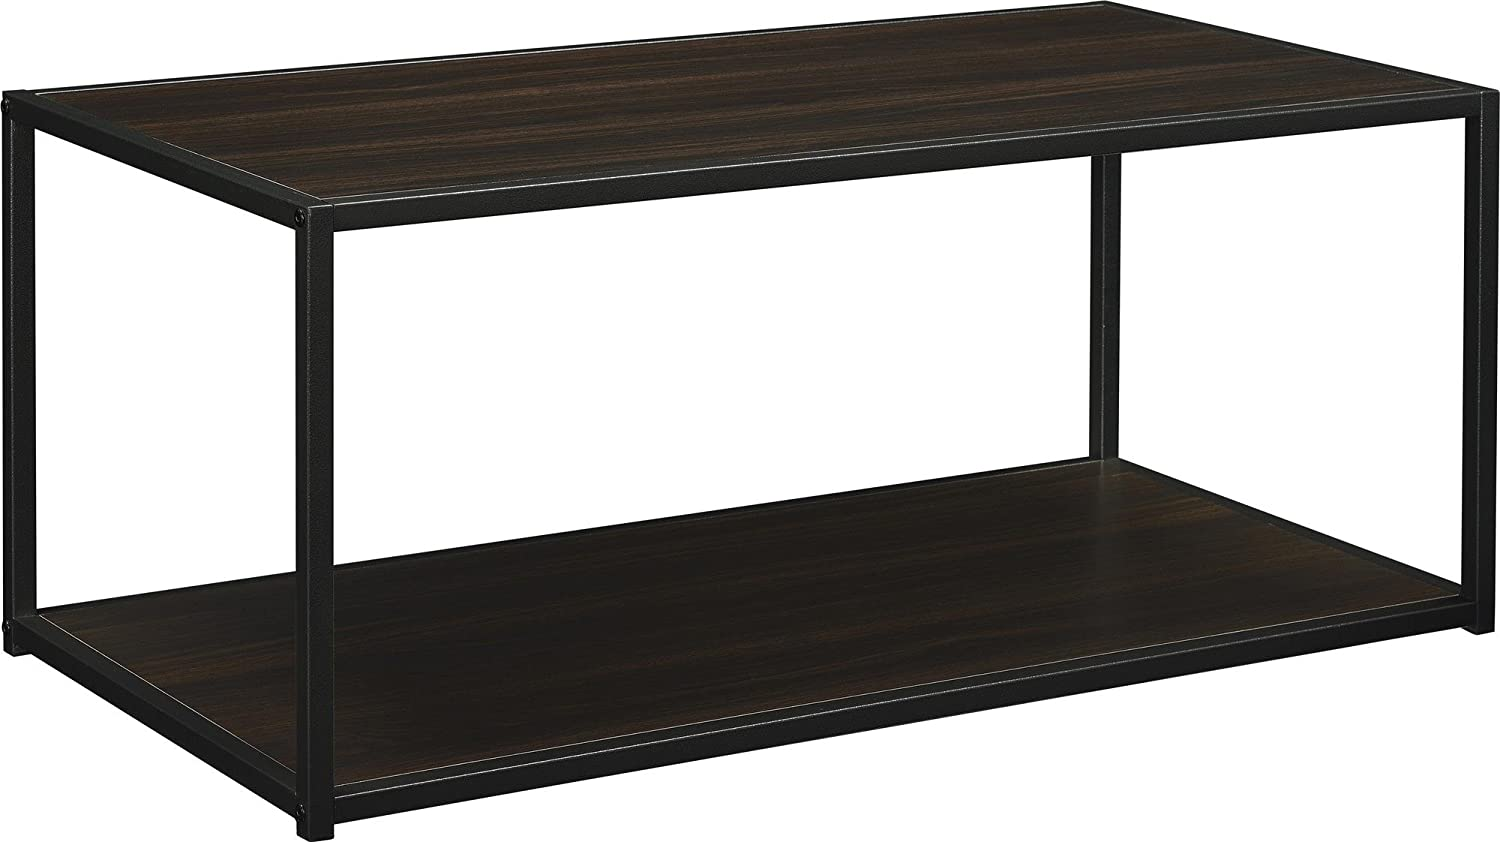 amazoncom altra canton coffee table with metal frame espresso kitchen dining - Metal Frame Coffee Table